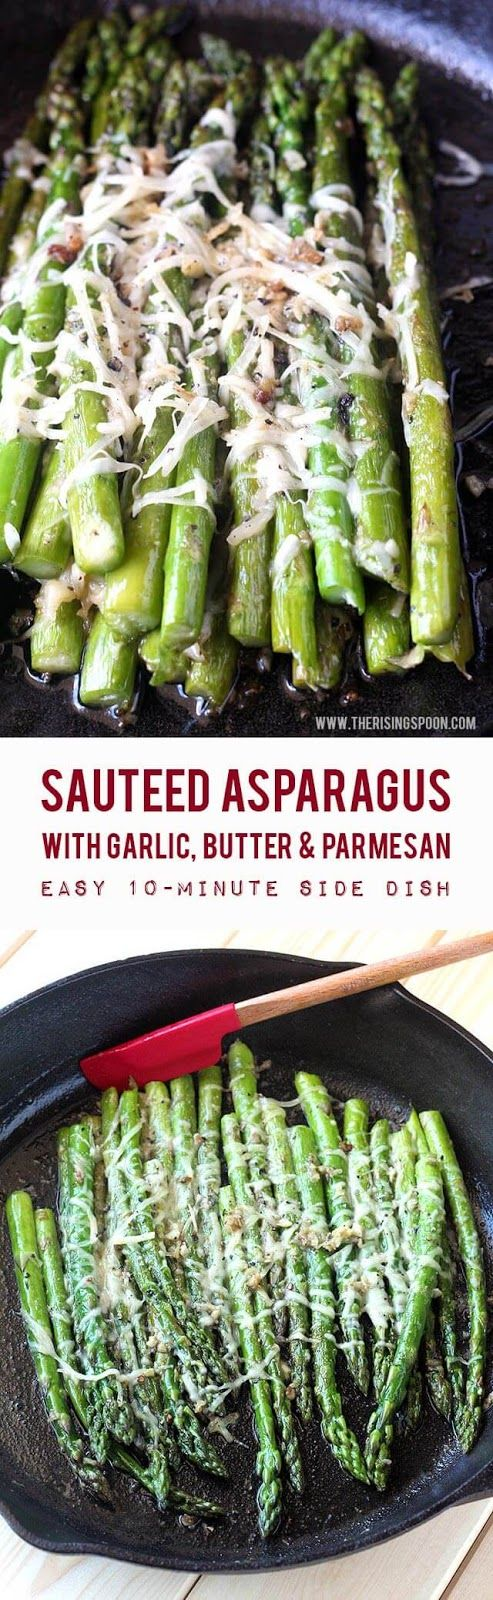 A quick & easy sauteed asparagus recipe with butter, garlic & shredded Parmesan cheese. In about 10 minutes or less, you'll have a